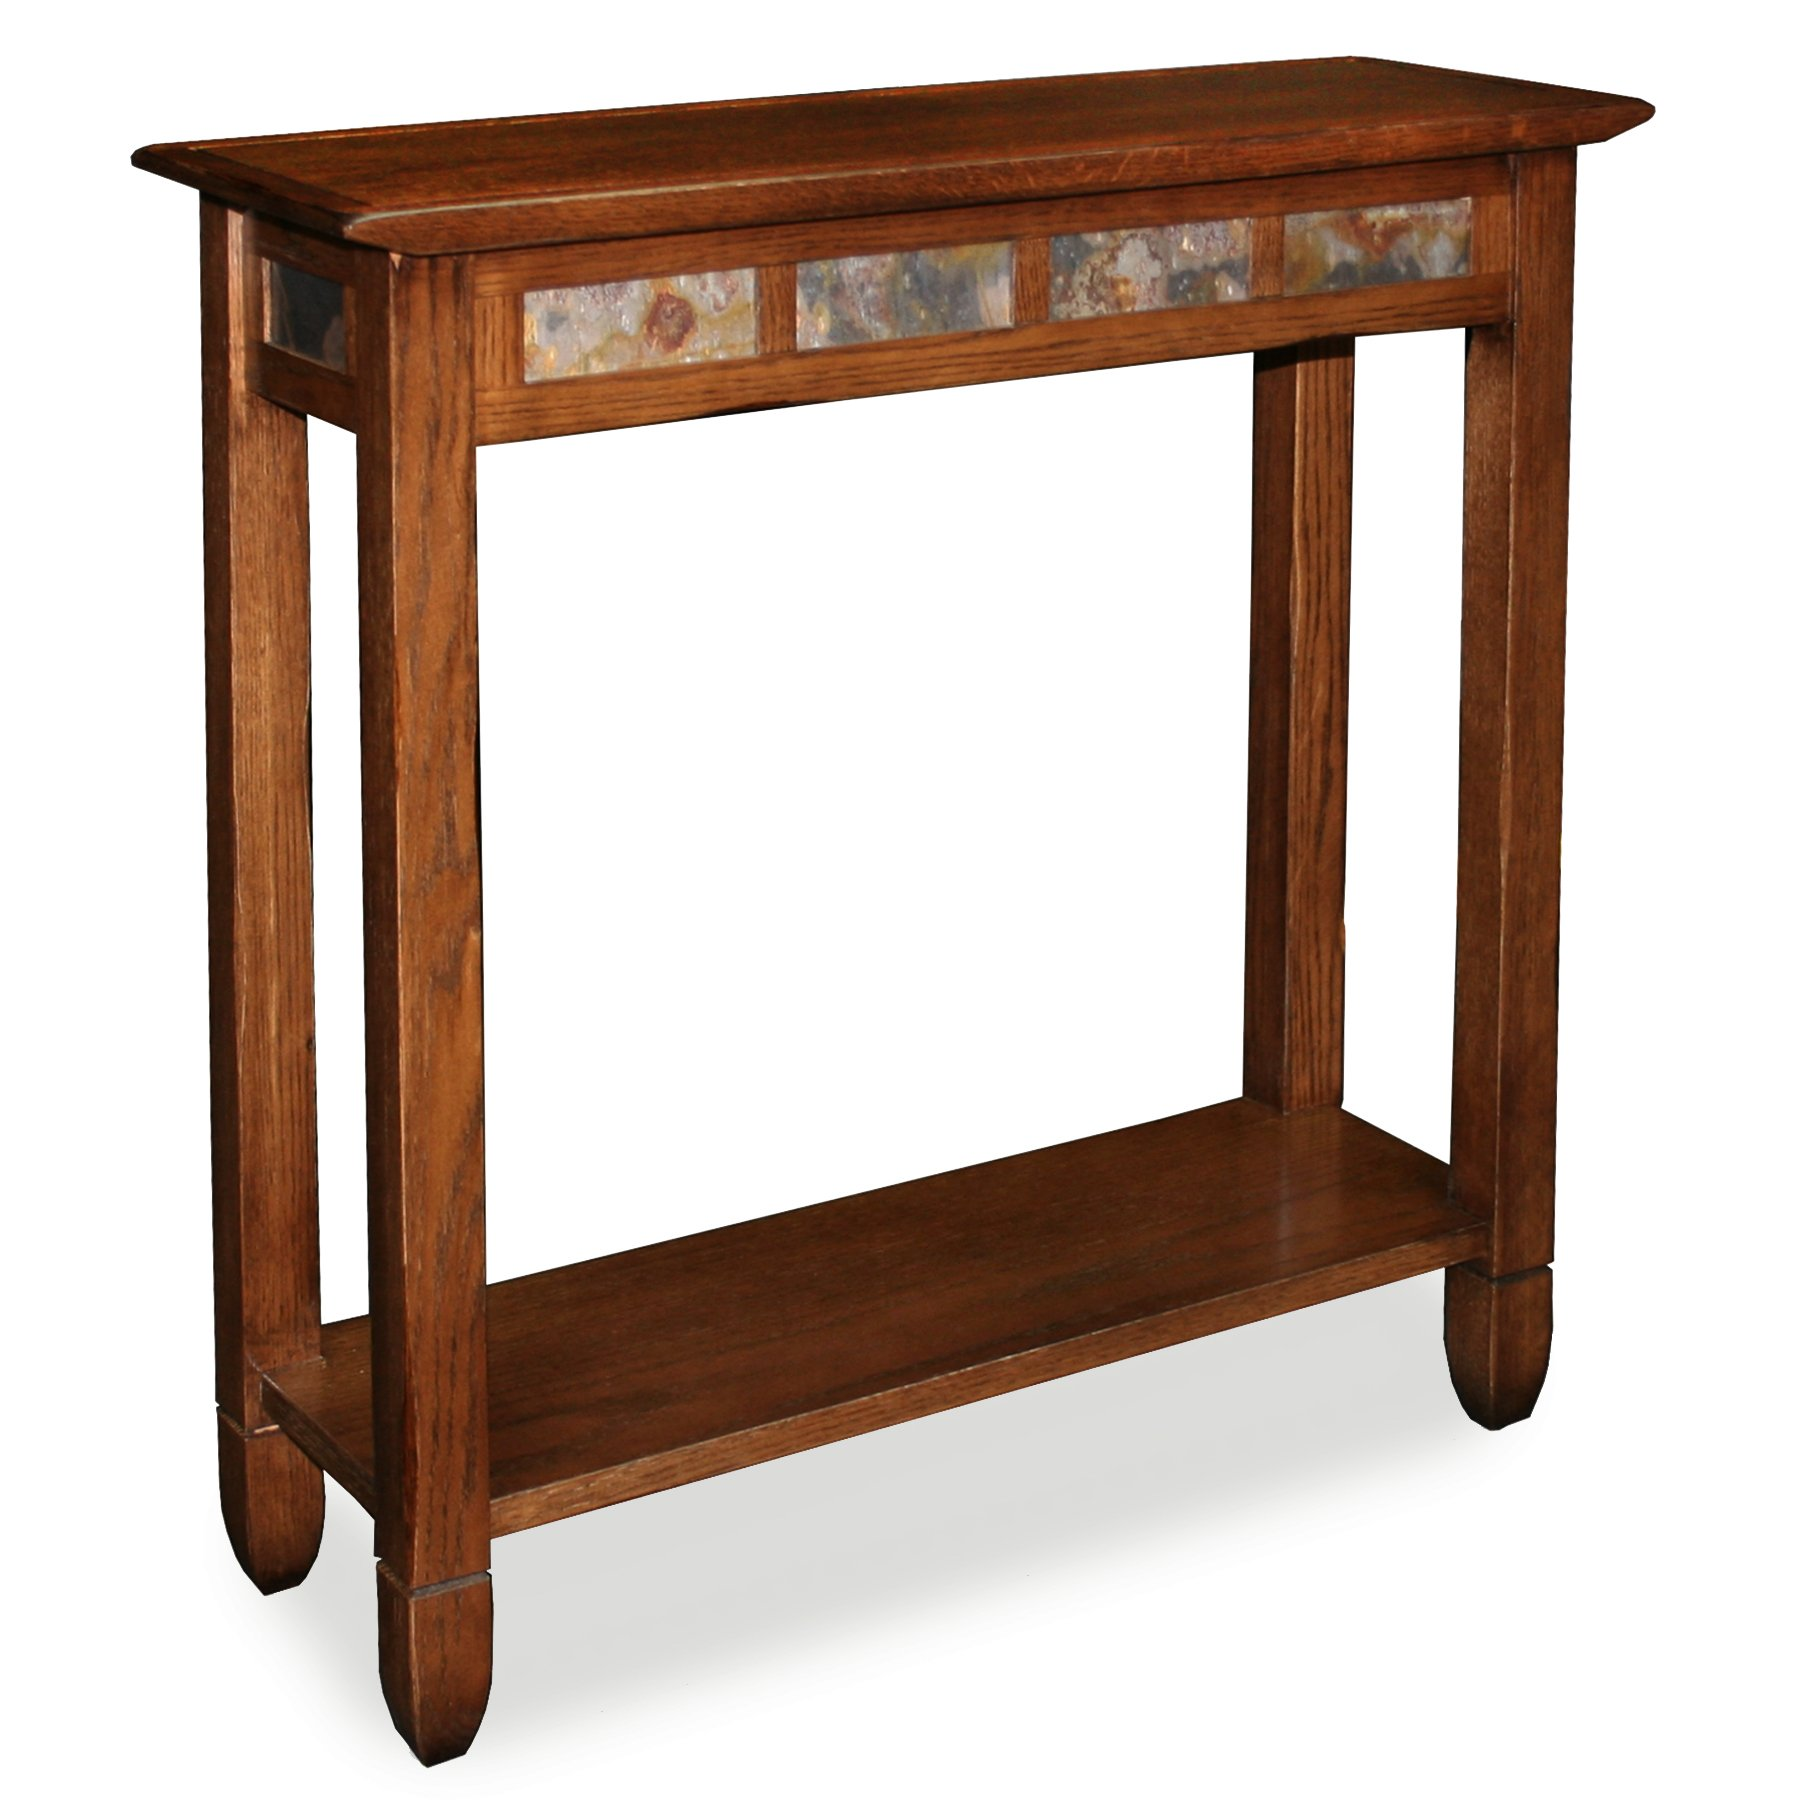 Rustic Slate Hall Stand - Rustic Oak Finish by Leick Furniture